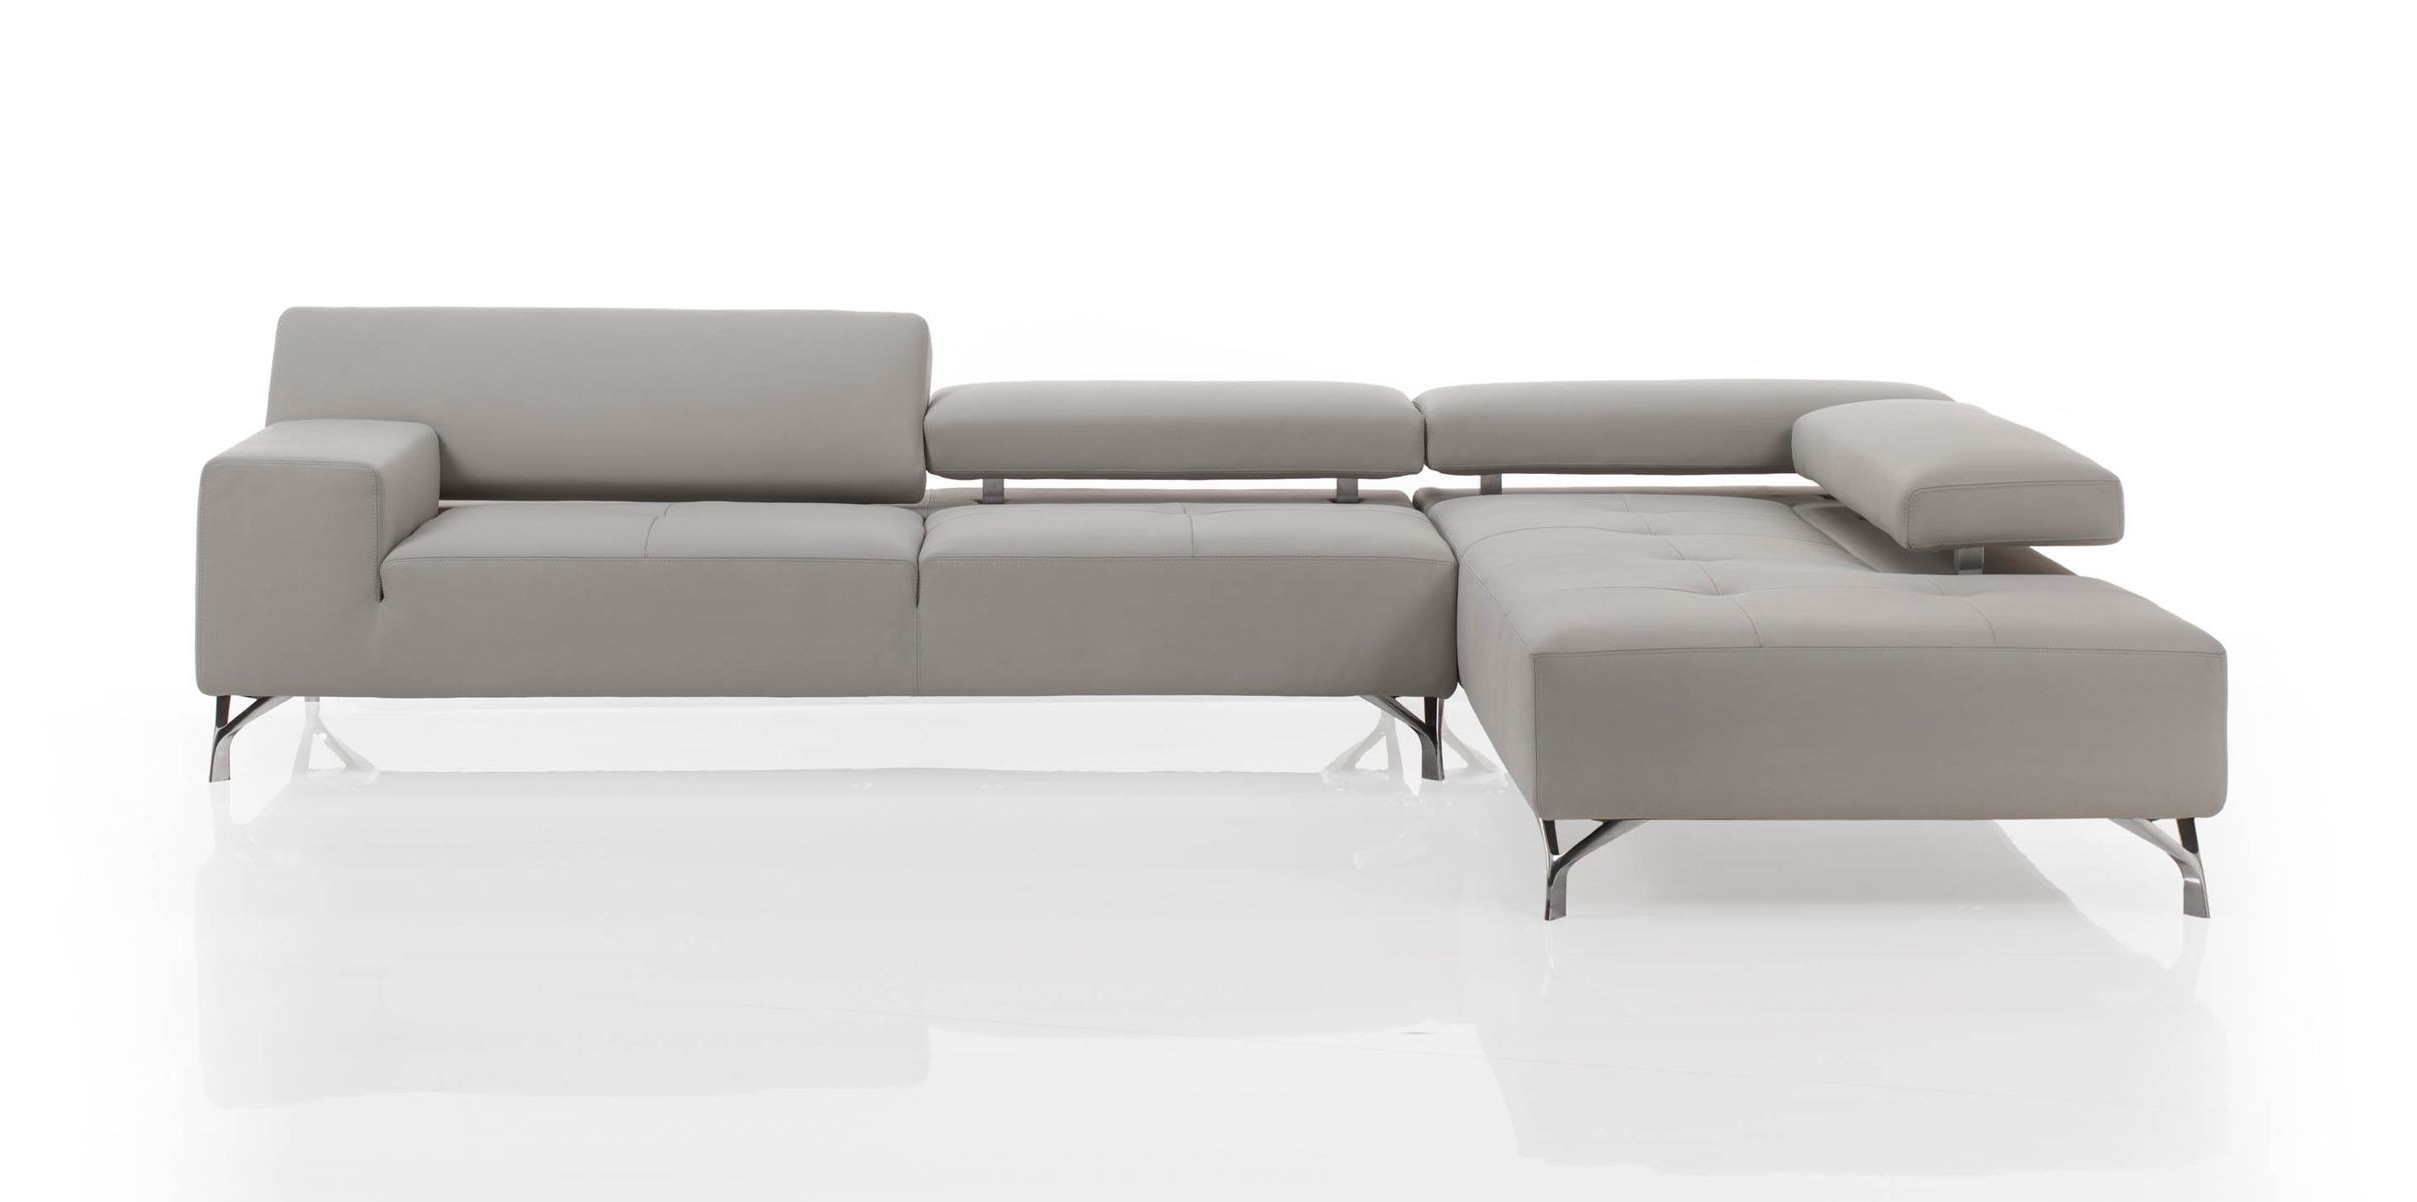 Cierre Imbottiti Throughout Recent Miami Sectional Sofas (View 2 of 20)